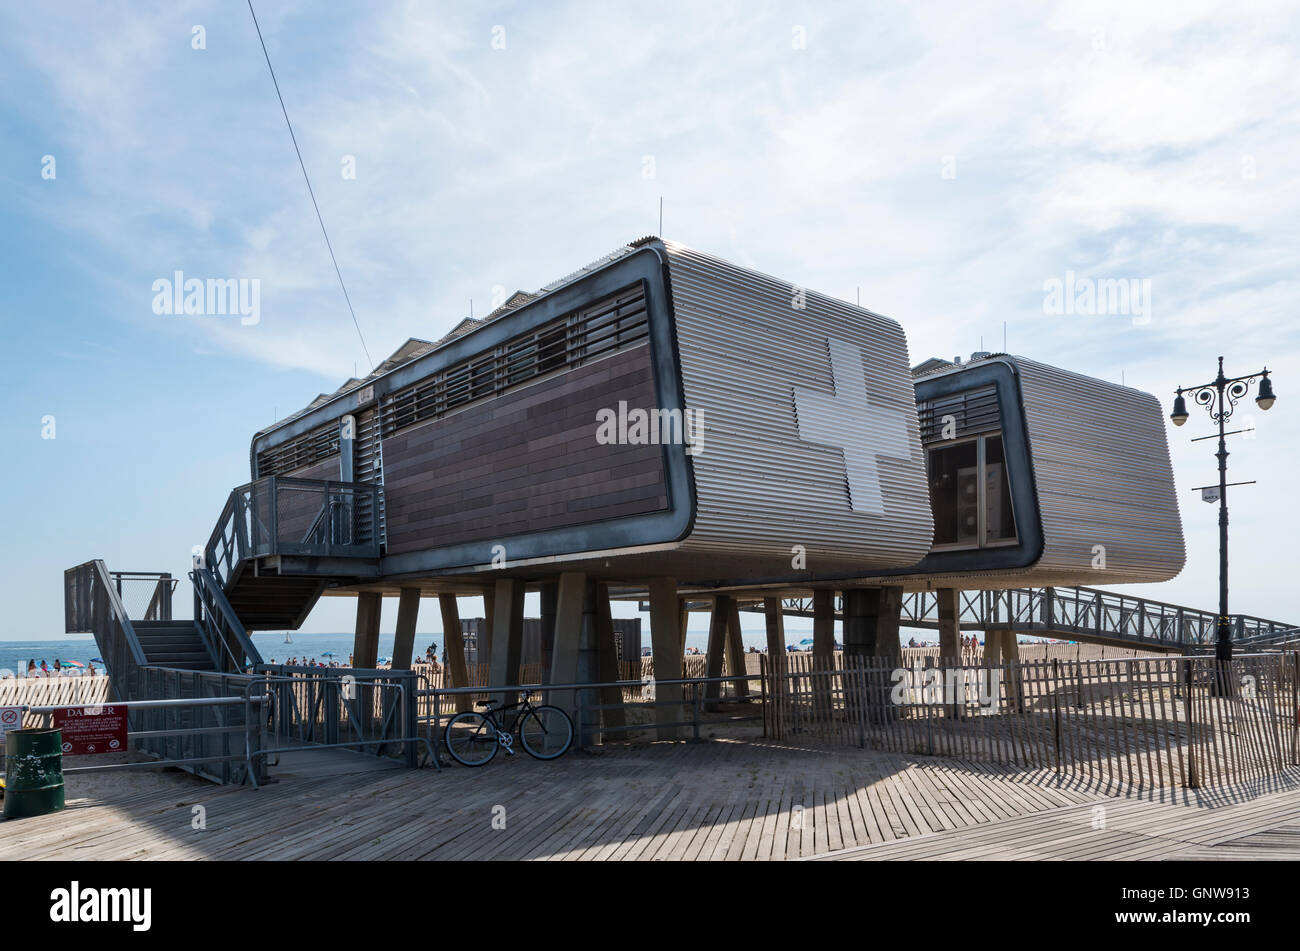 Exterior of first aid medical station building on Brighton Beach, Brooklyn, New York. - Stock Image